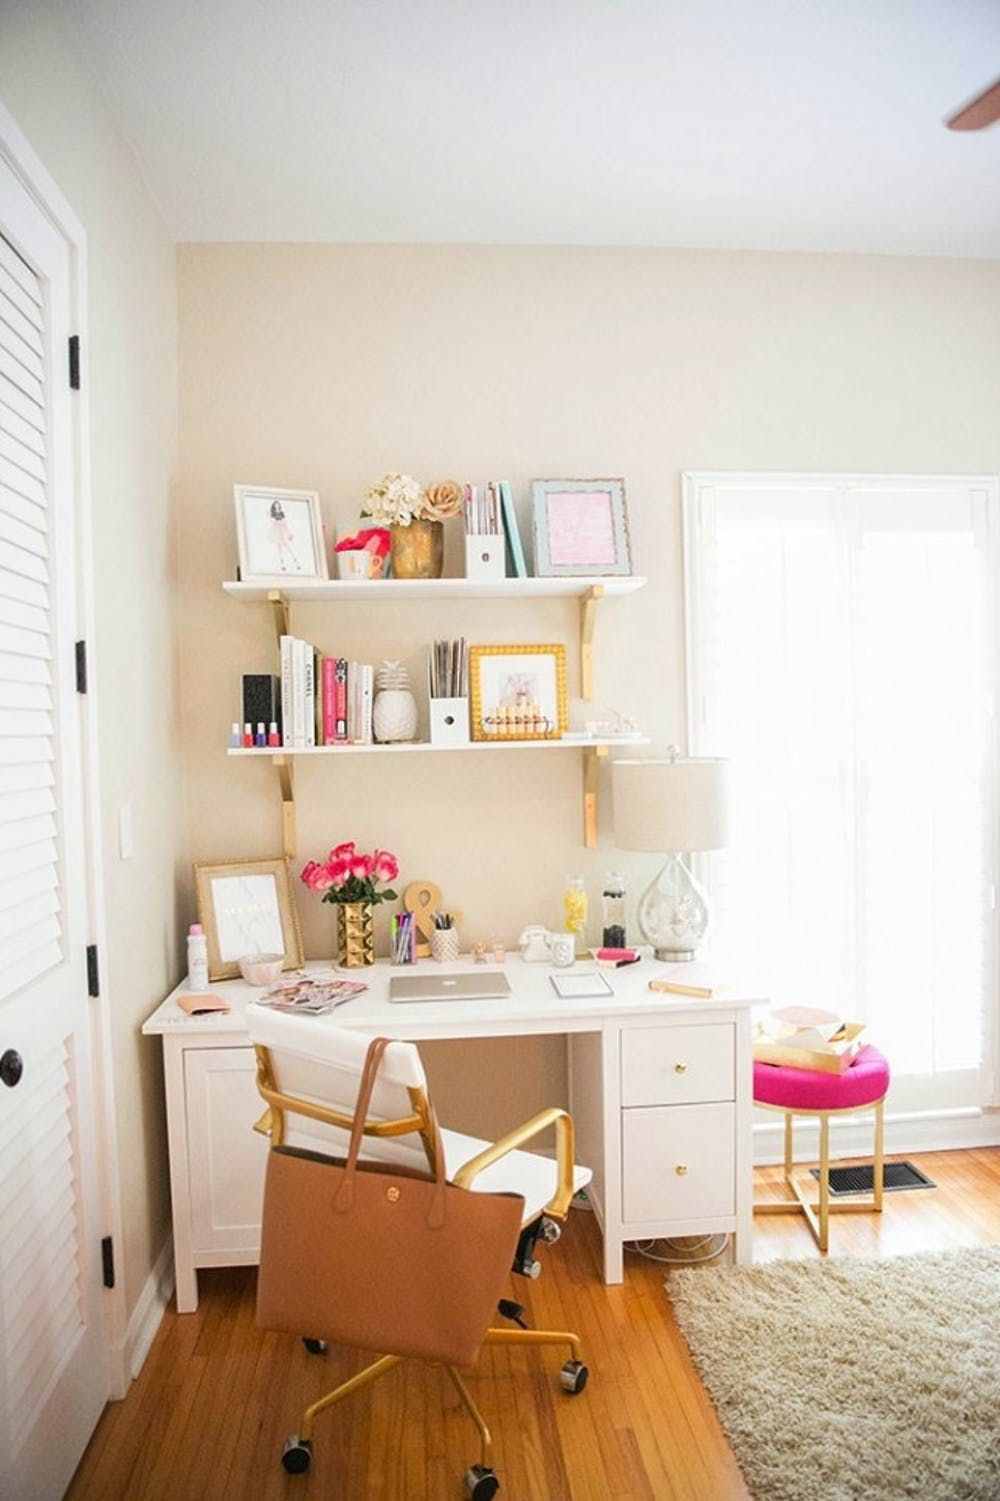 Here Are The Top 24 Diy Spring Projects According To Pinterest Small Space Office Home Office Design Home Office Decor